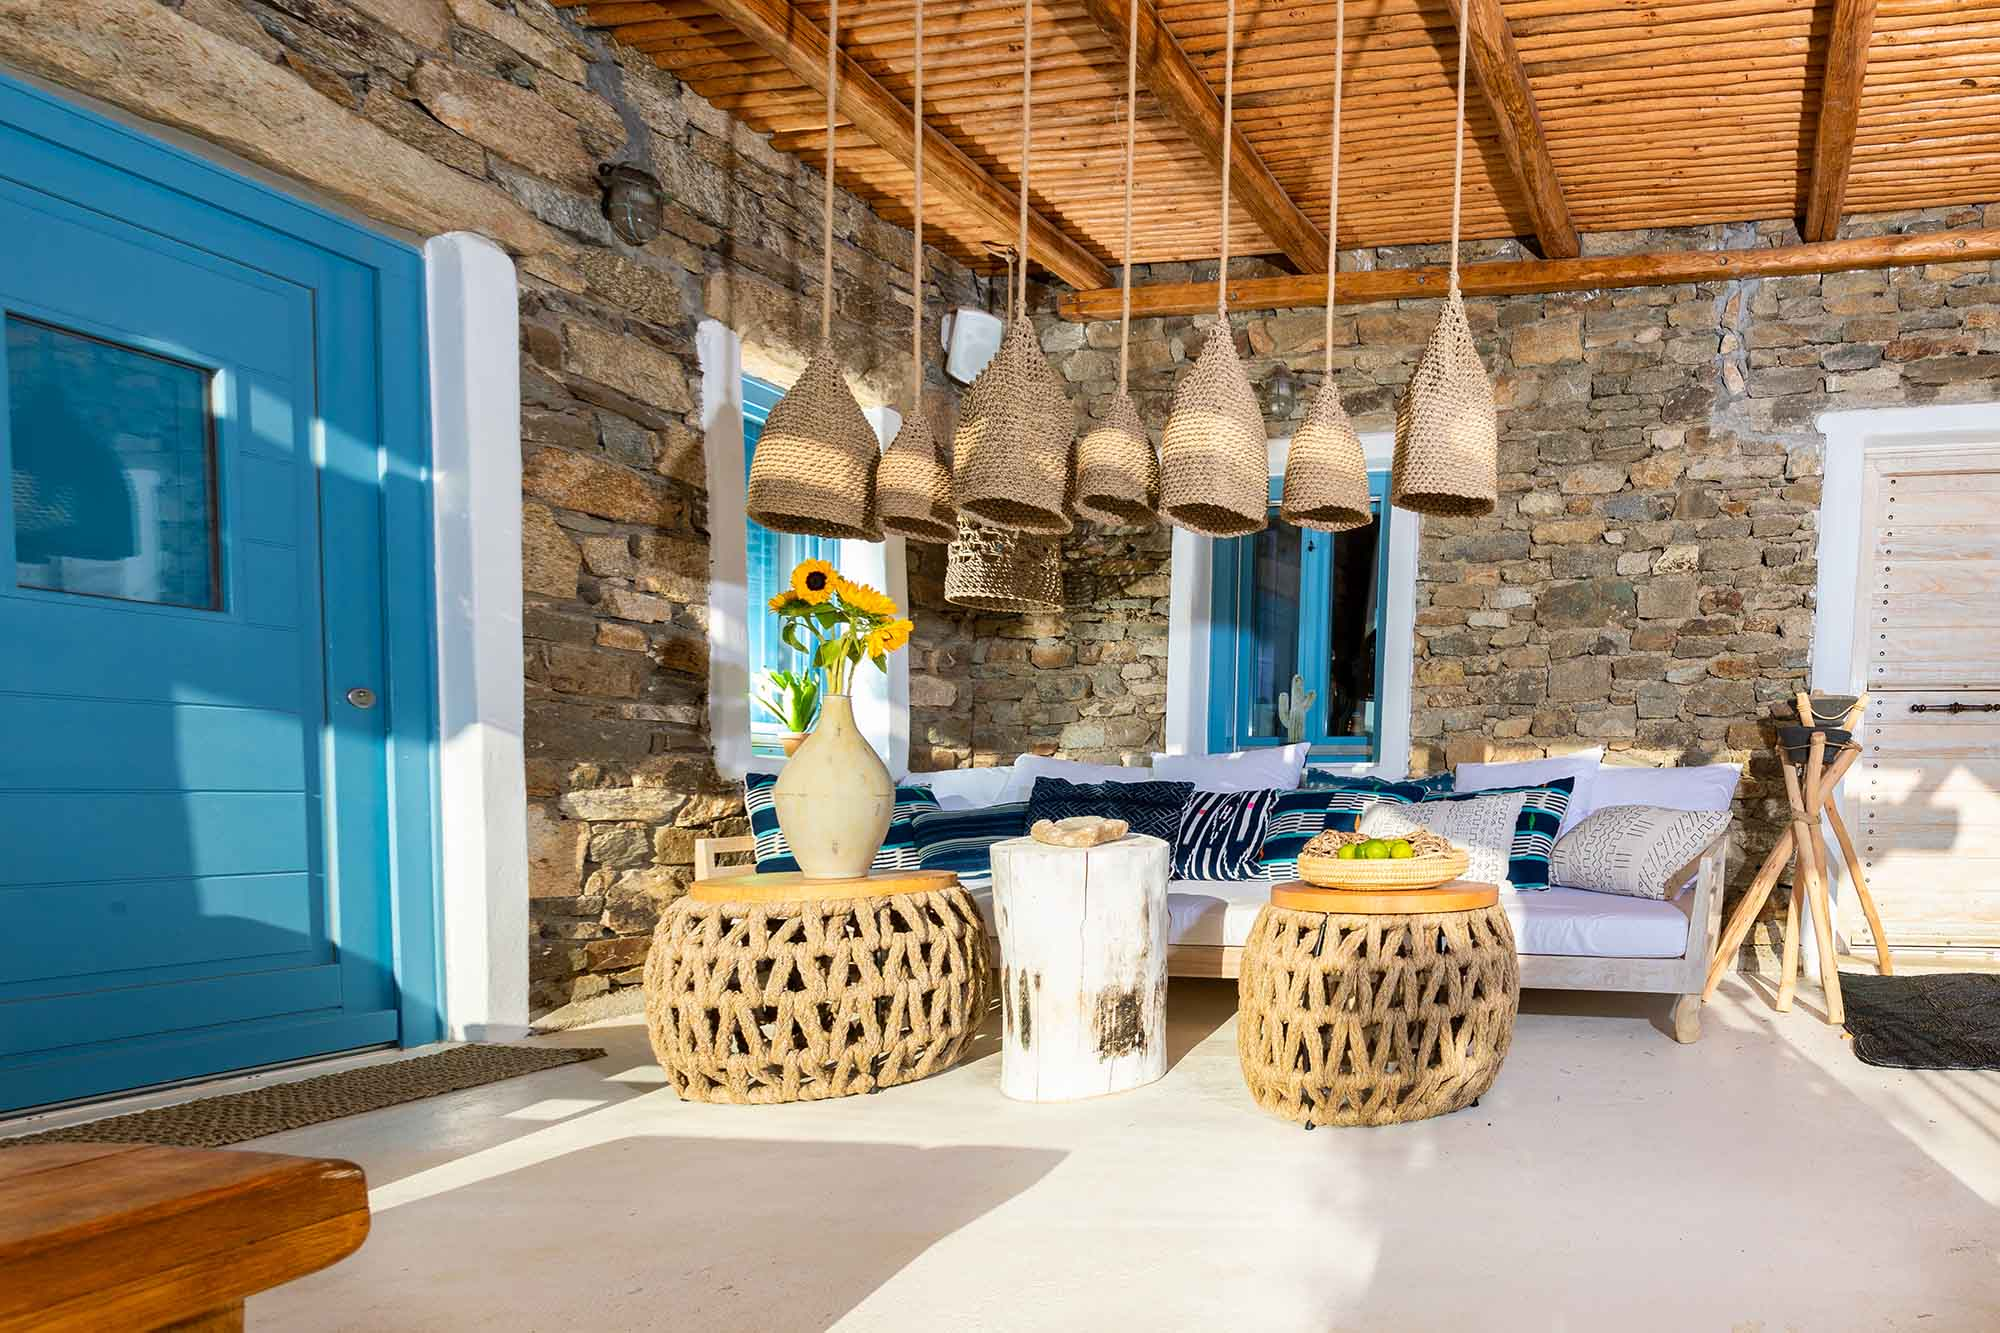 RENT A LUXURIOUS VILLA BY THE SEA IN MYKONOS - VILLA KARKOS - sofa outside